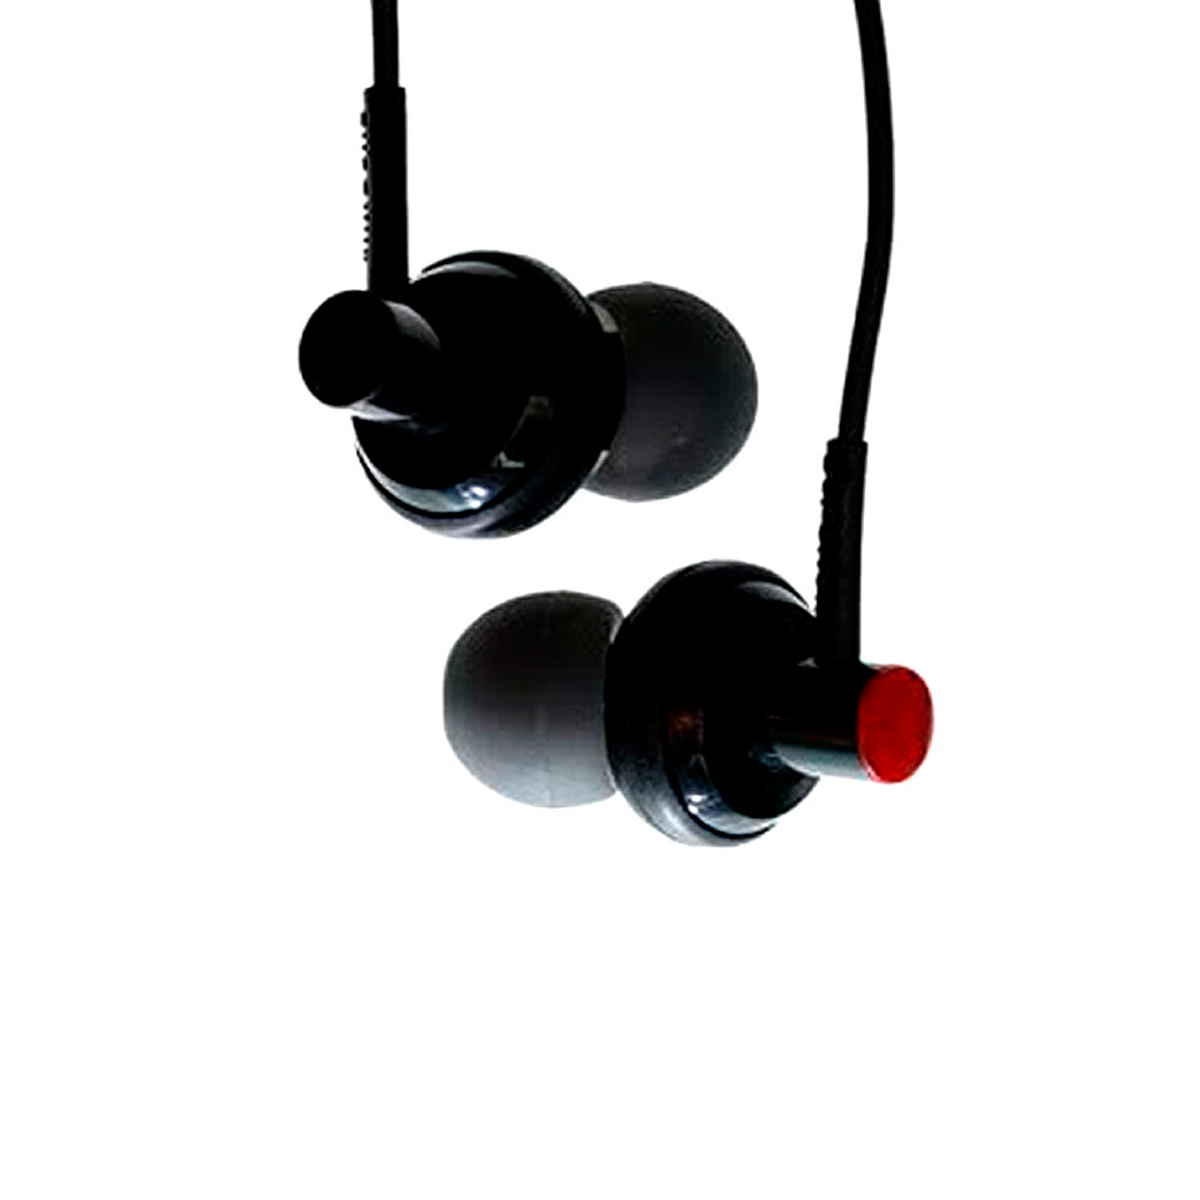 HD381 - Fone de Ouvido In-ear Preto HD 381 - Superlux